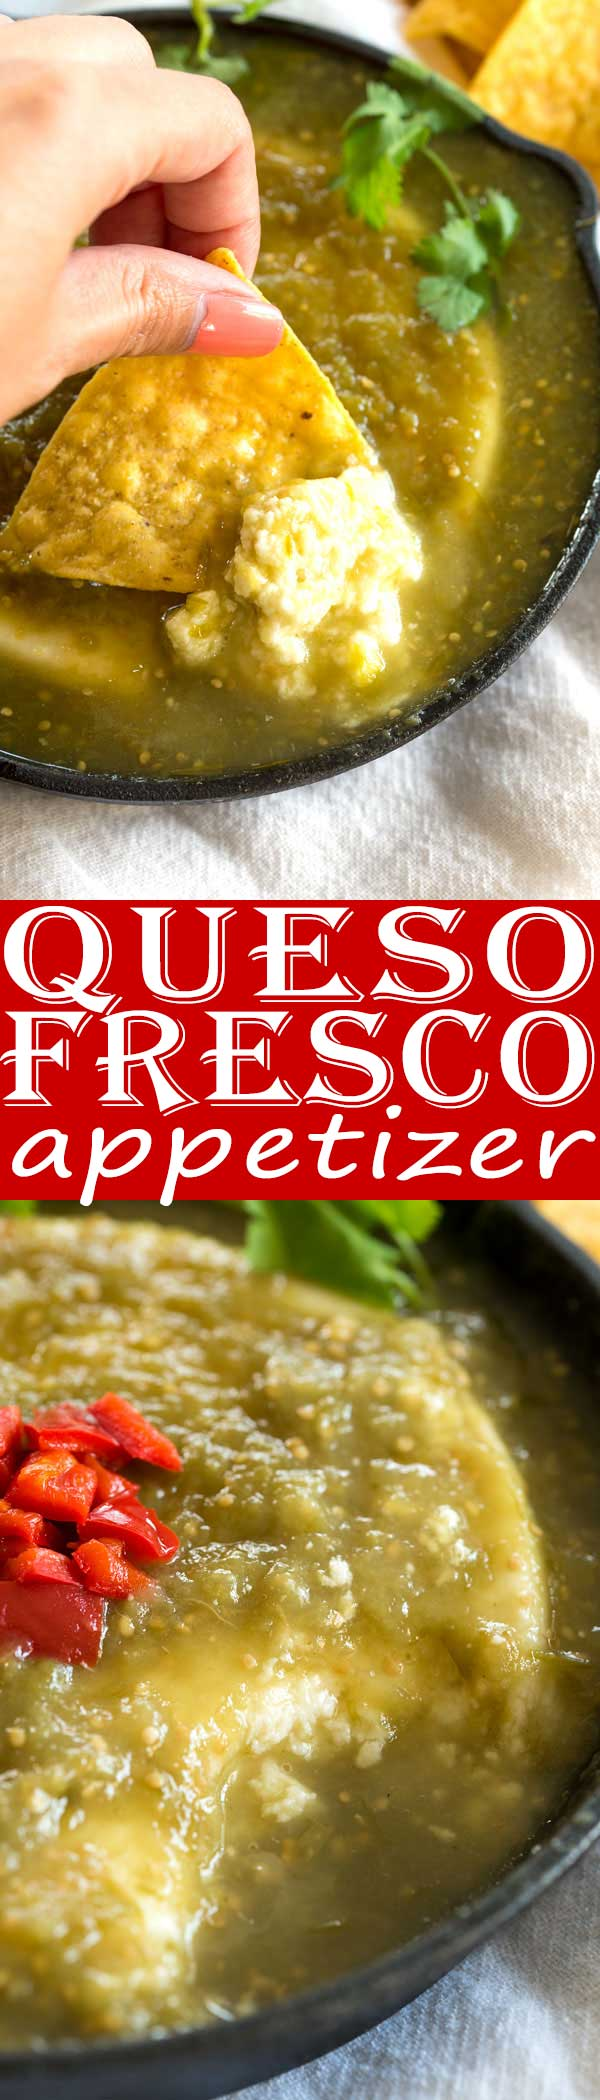 Only 2 ingredients in this insanely delicious Baked Queso Fresco Dip recipe with salsa verde - my best tip how to melt this cheese! #appetizer #mexican #foodgawker #recipeoftheday #cheese #easyrecipe